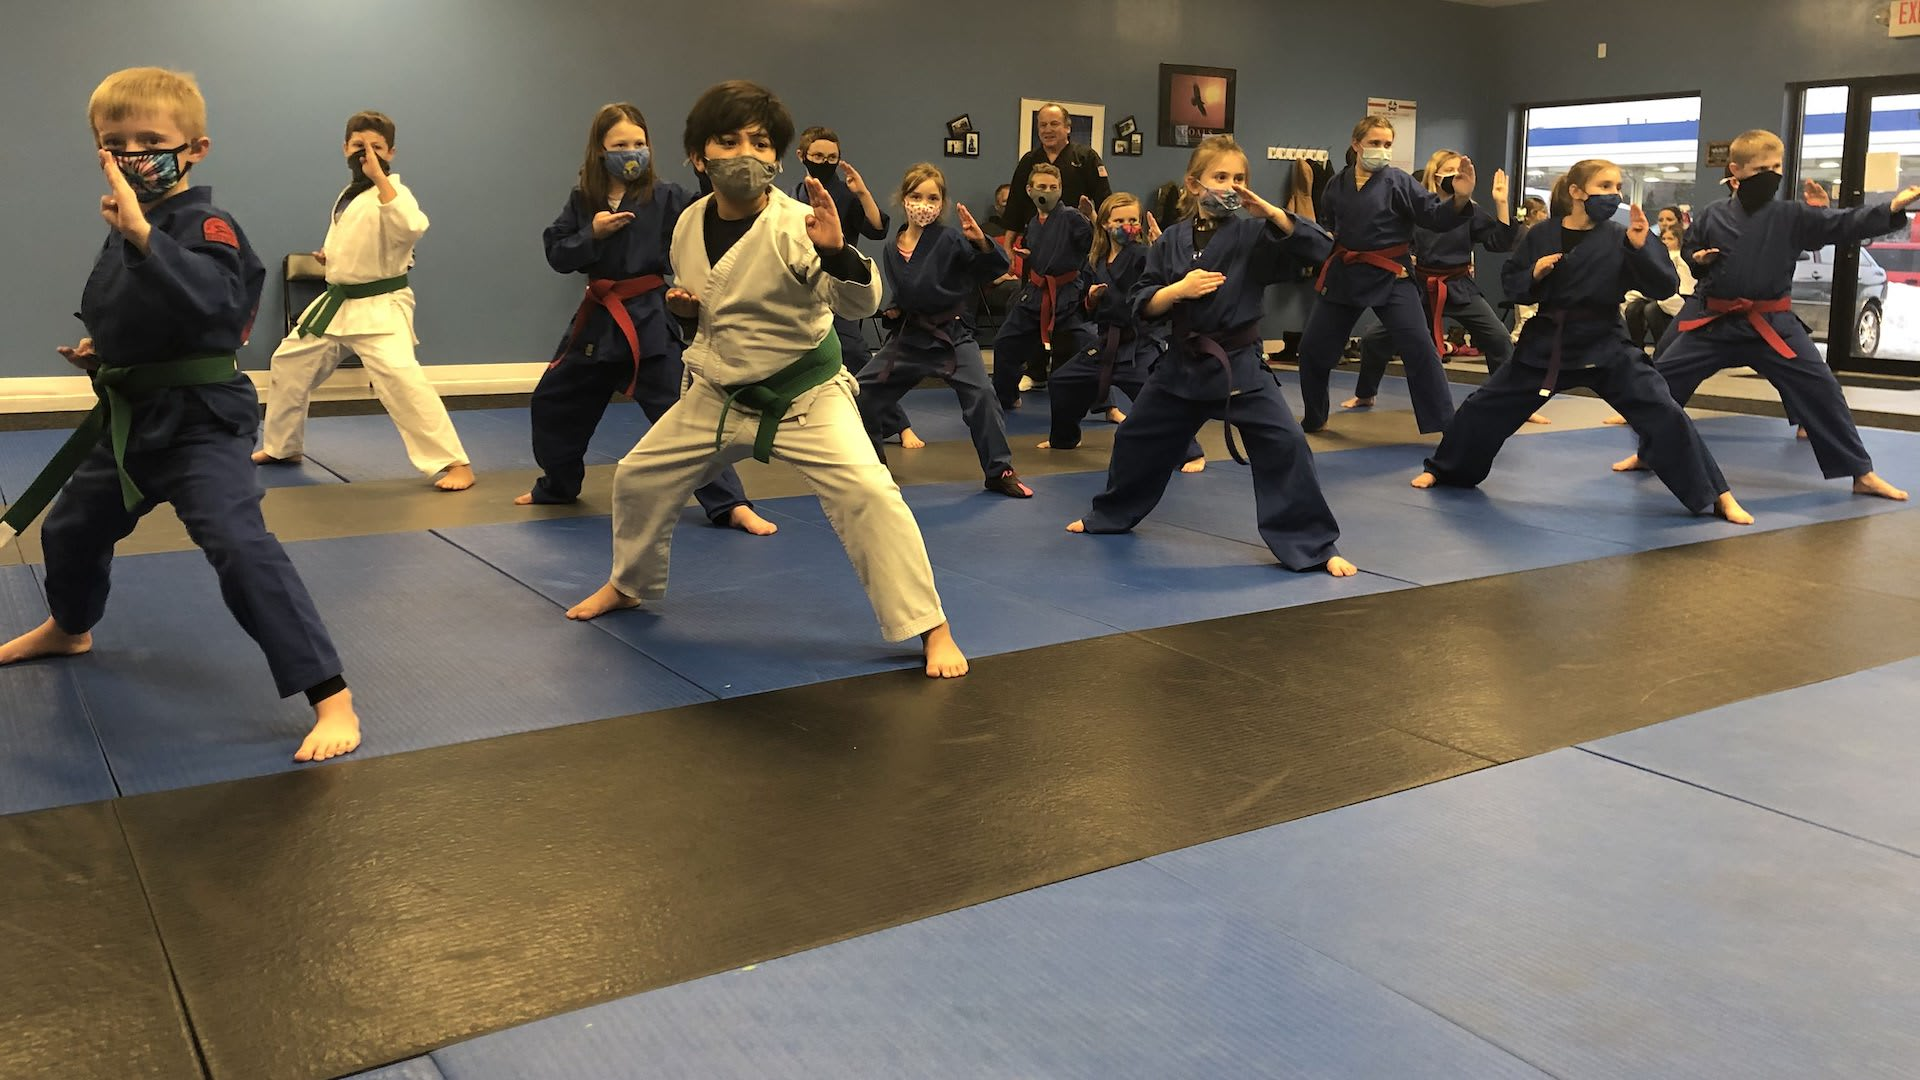 Empowering the Community of Fort Atkinson Through Quality Karate Instruction